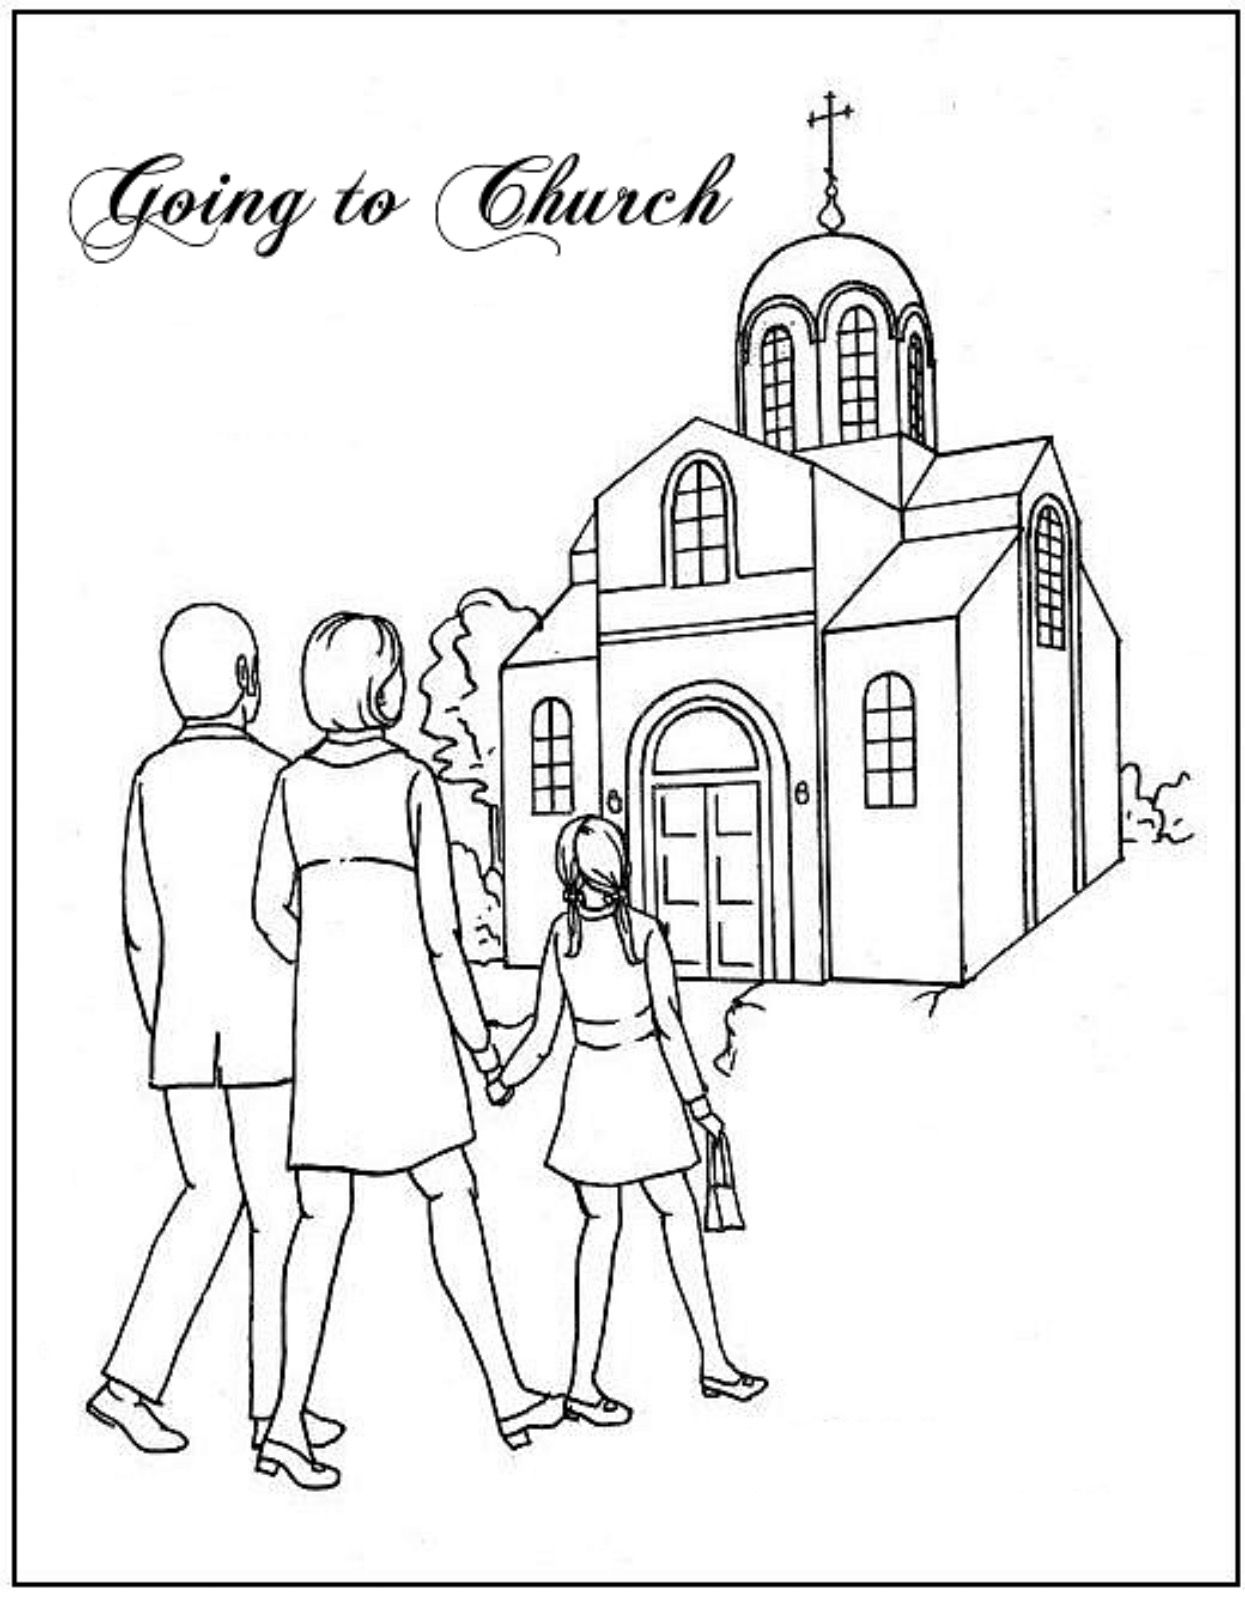 Going To Church Coloring Page Orthodox Catholic Bible Coloring